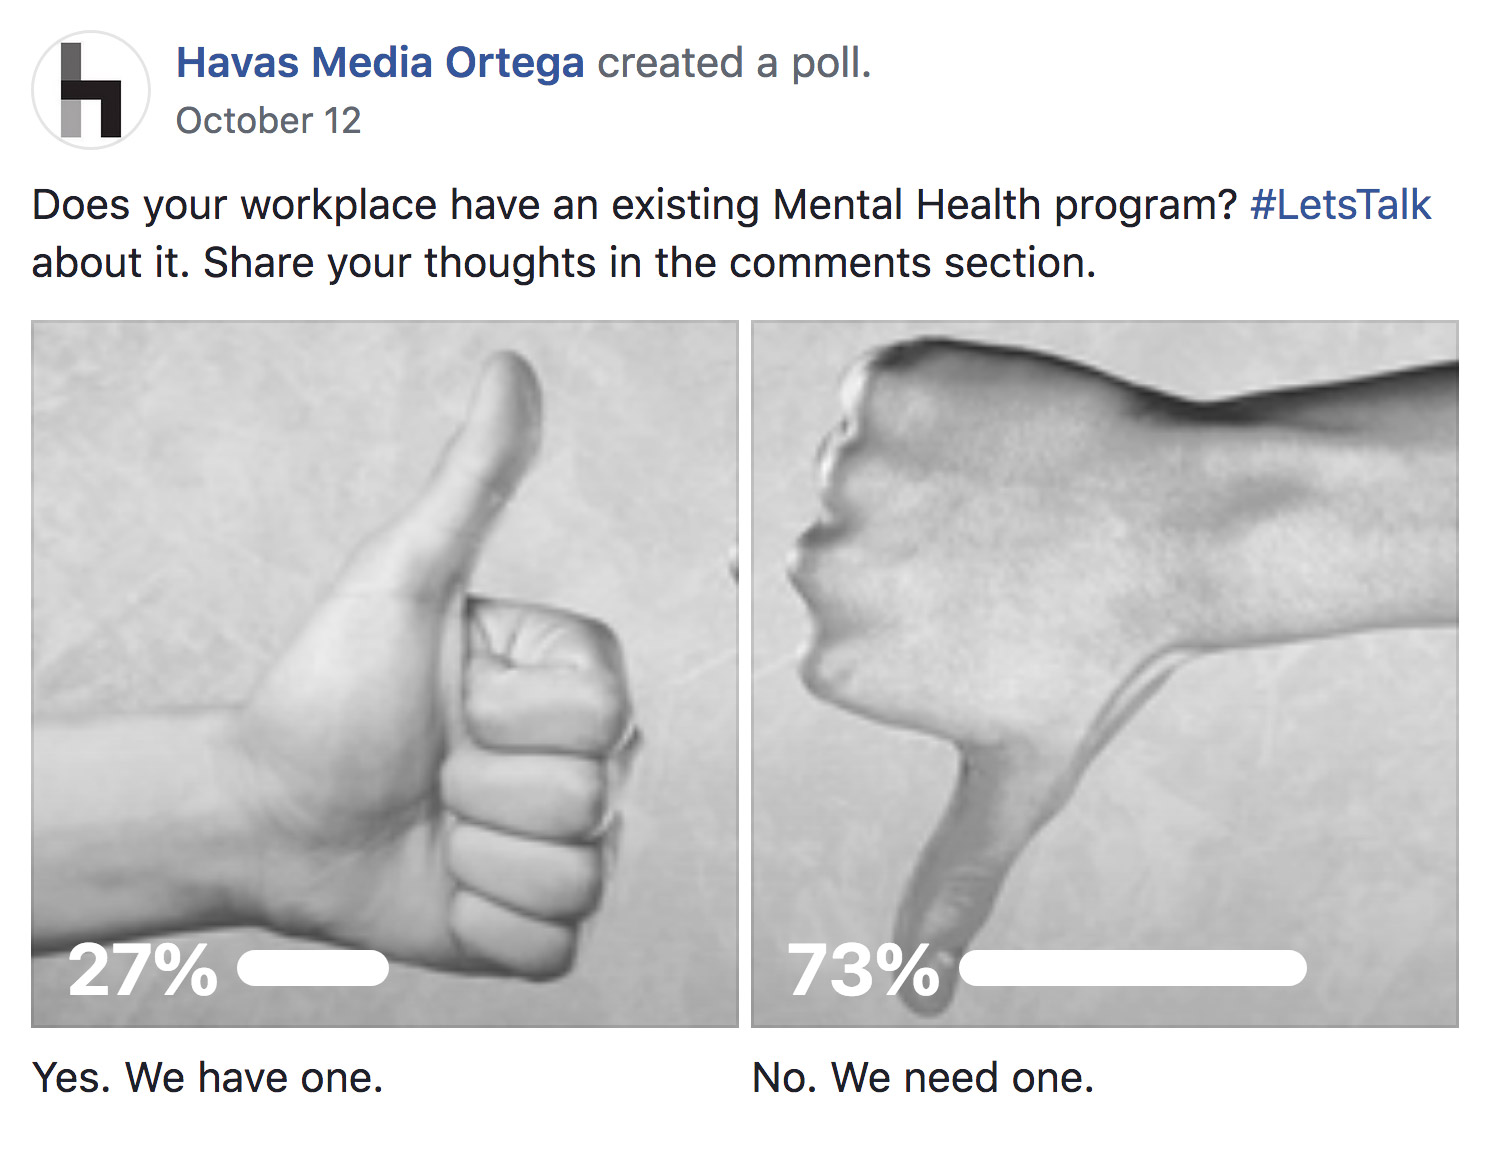 A screenshot of a Facebook poll asking: Does your workplace have an existing Mental Health program? 27% of respondents say they have one. 73% say they don't have one in the workplace.